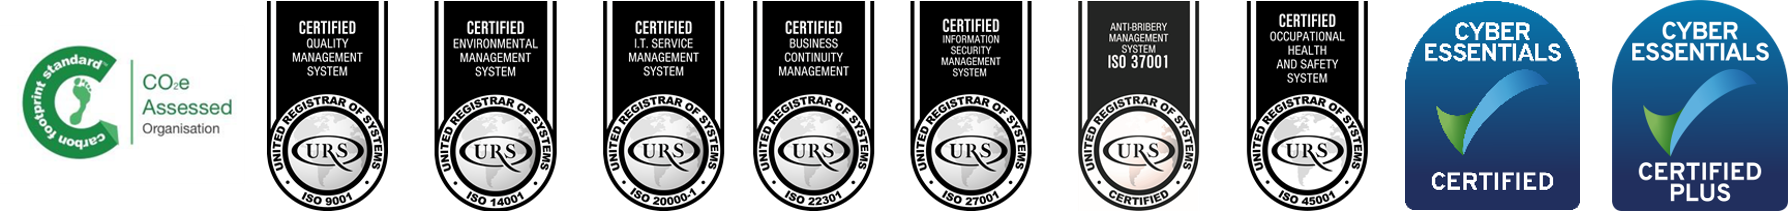 certifications image sept 2021